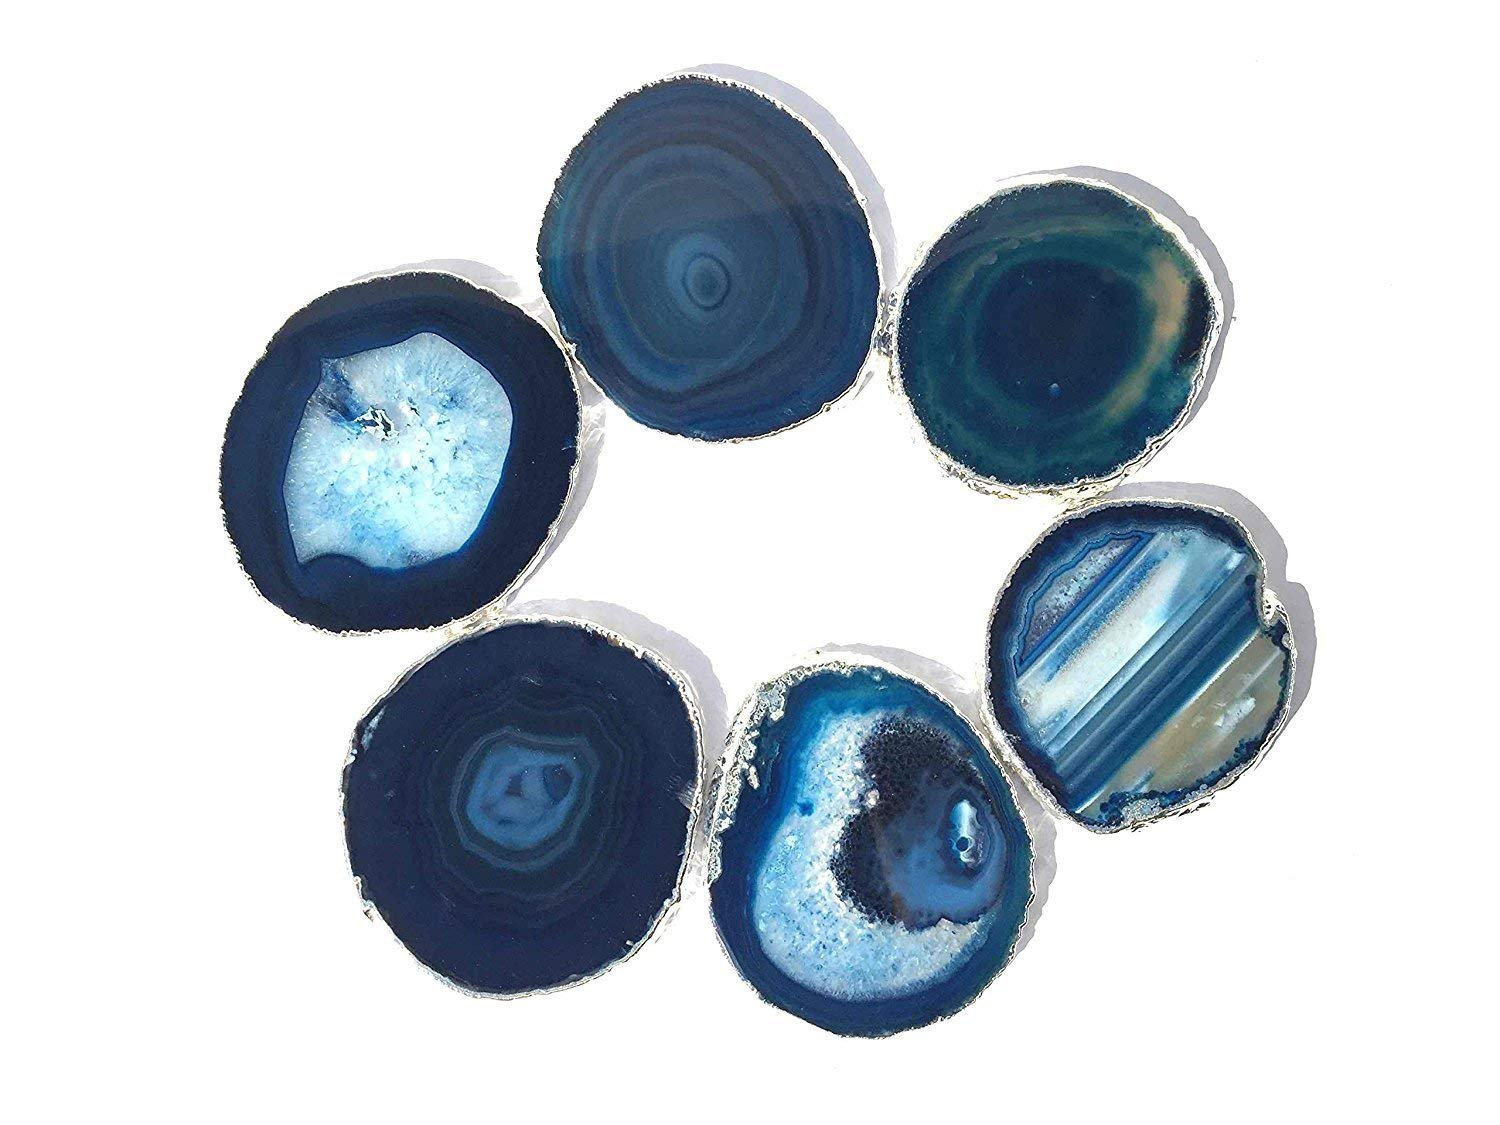 JIC Gem Silver Plated Dyed Blue Agate Coasters, 6 pcs set, 3-4'', with Rubber Bumper